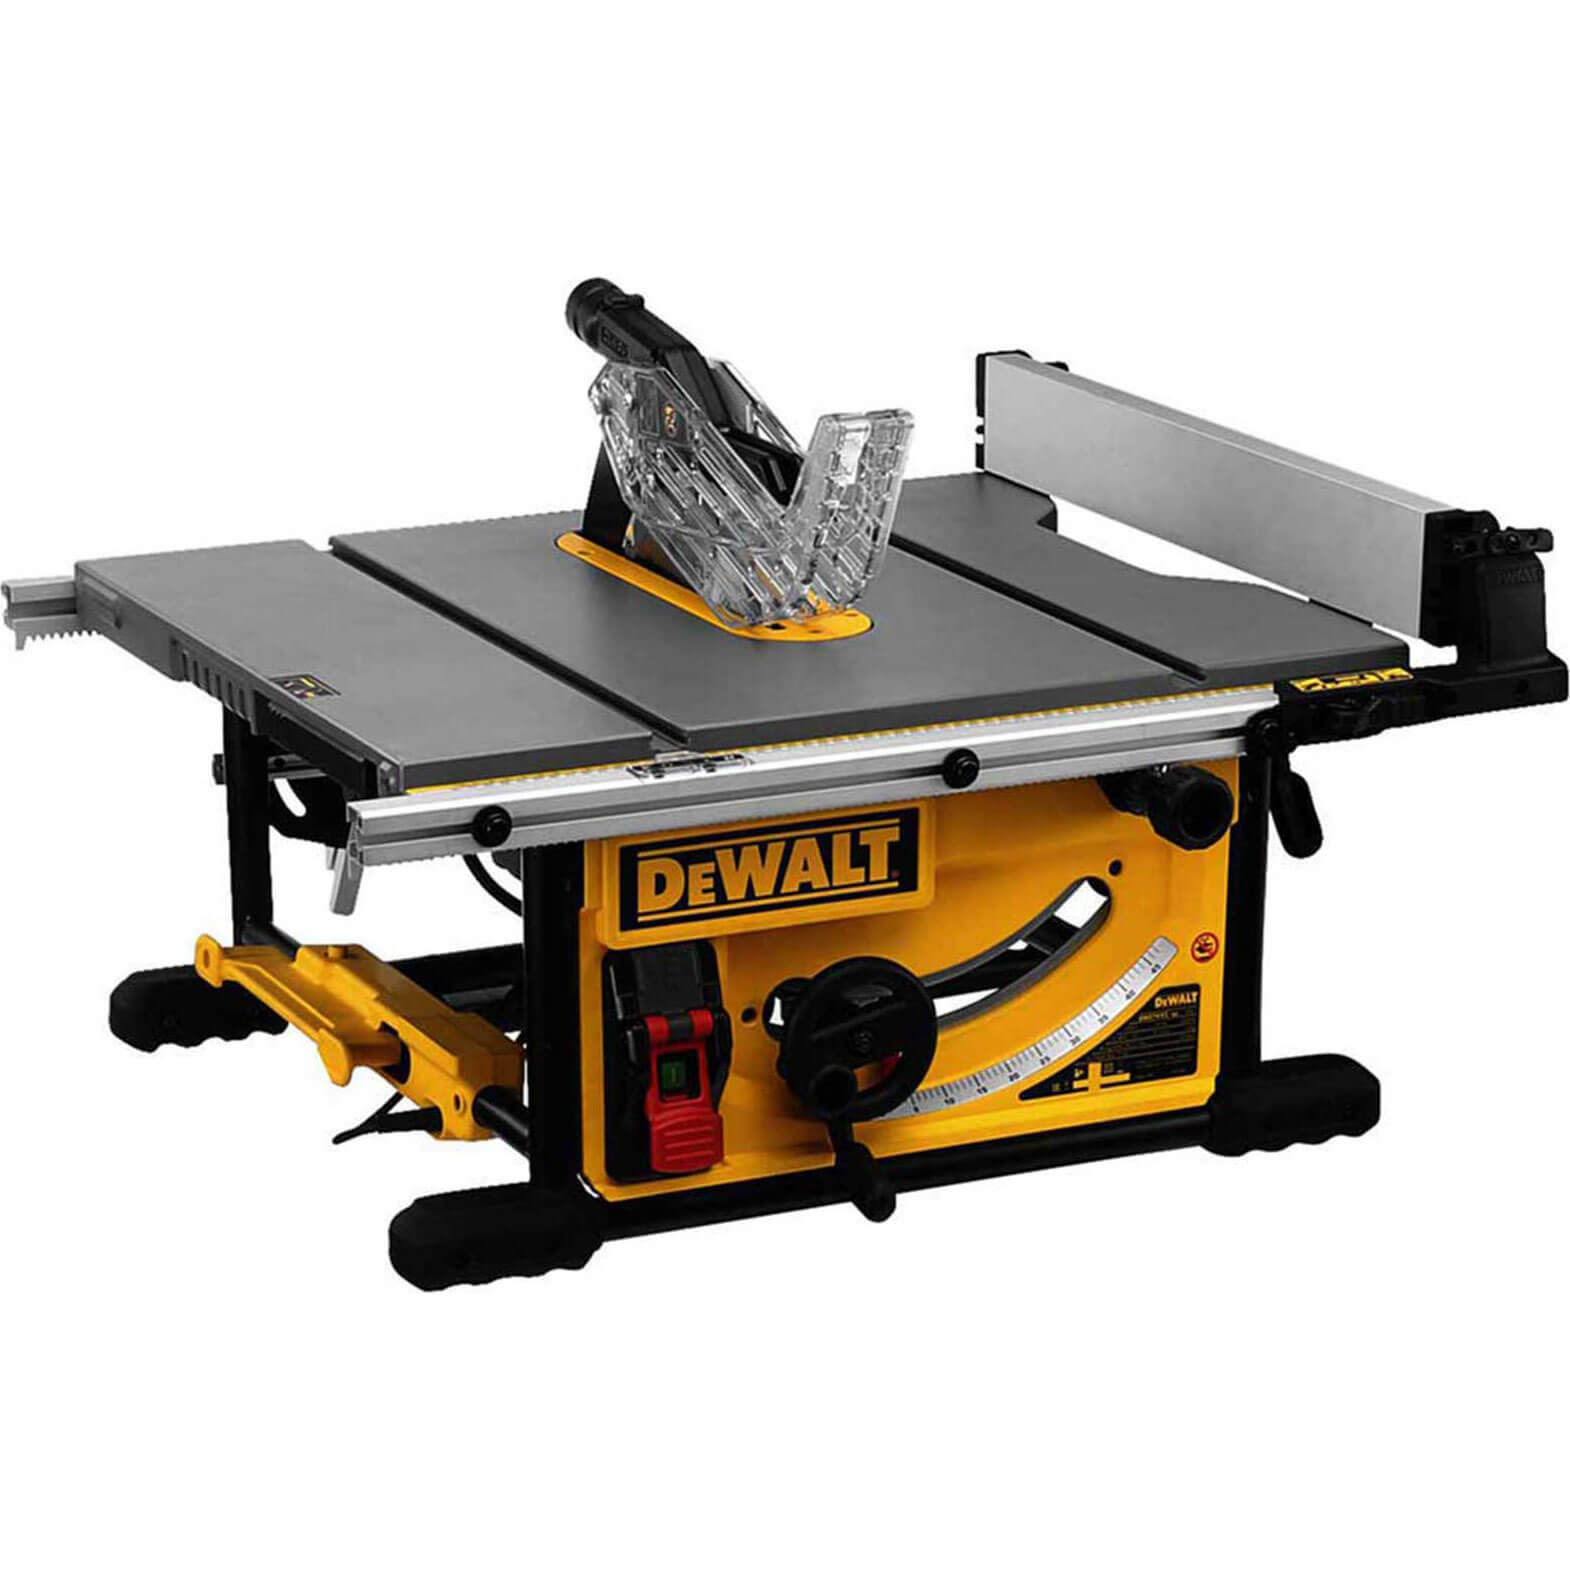 DeWalt DWE7492 Portable Table Saw 250mm 110v